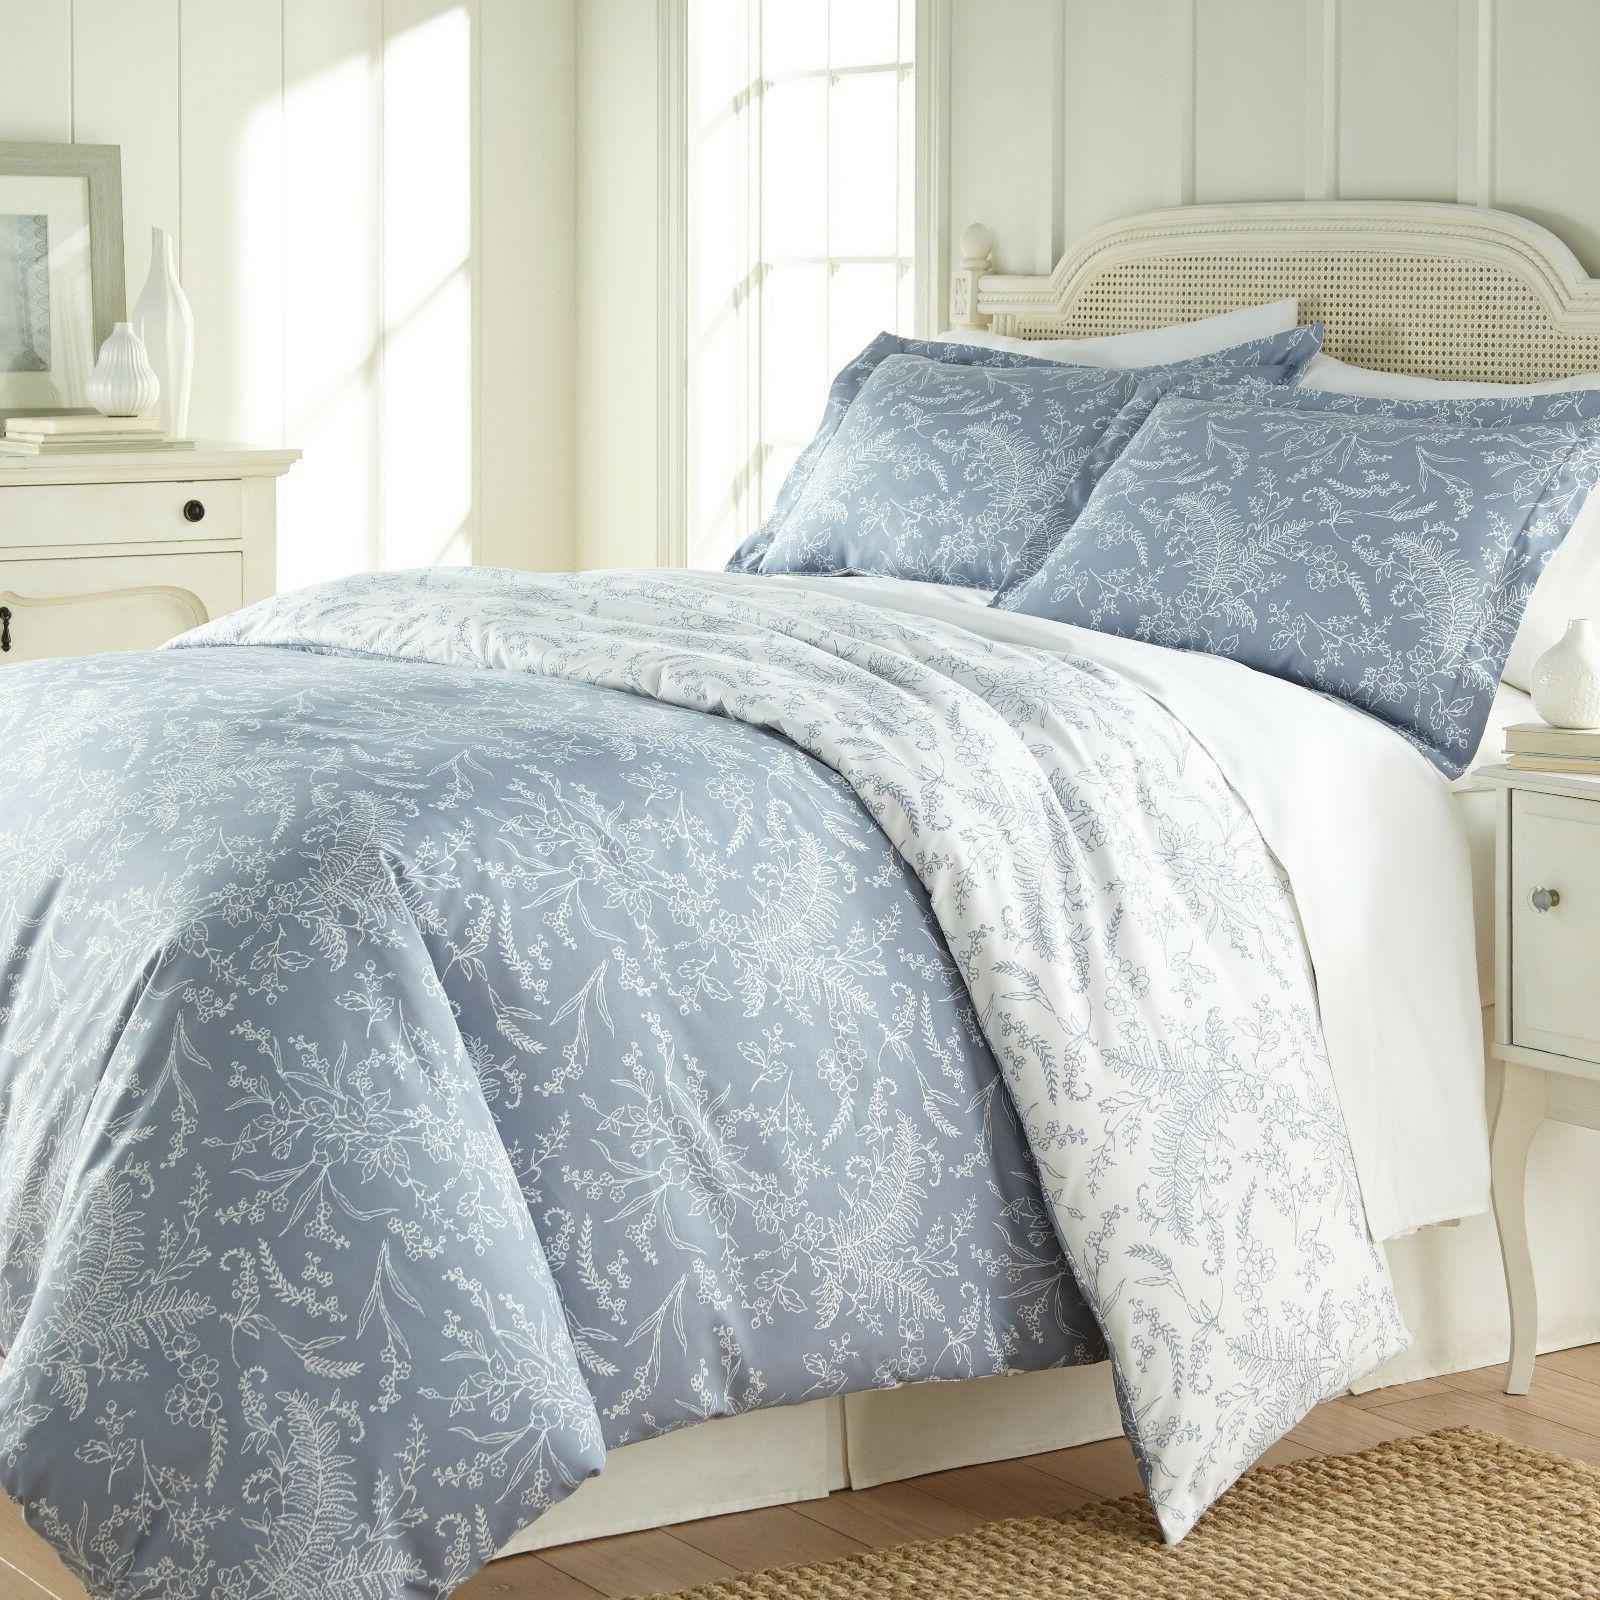 Ultra Soft 3-piece Winter Floral Cover Set